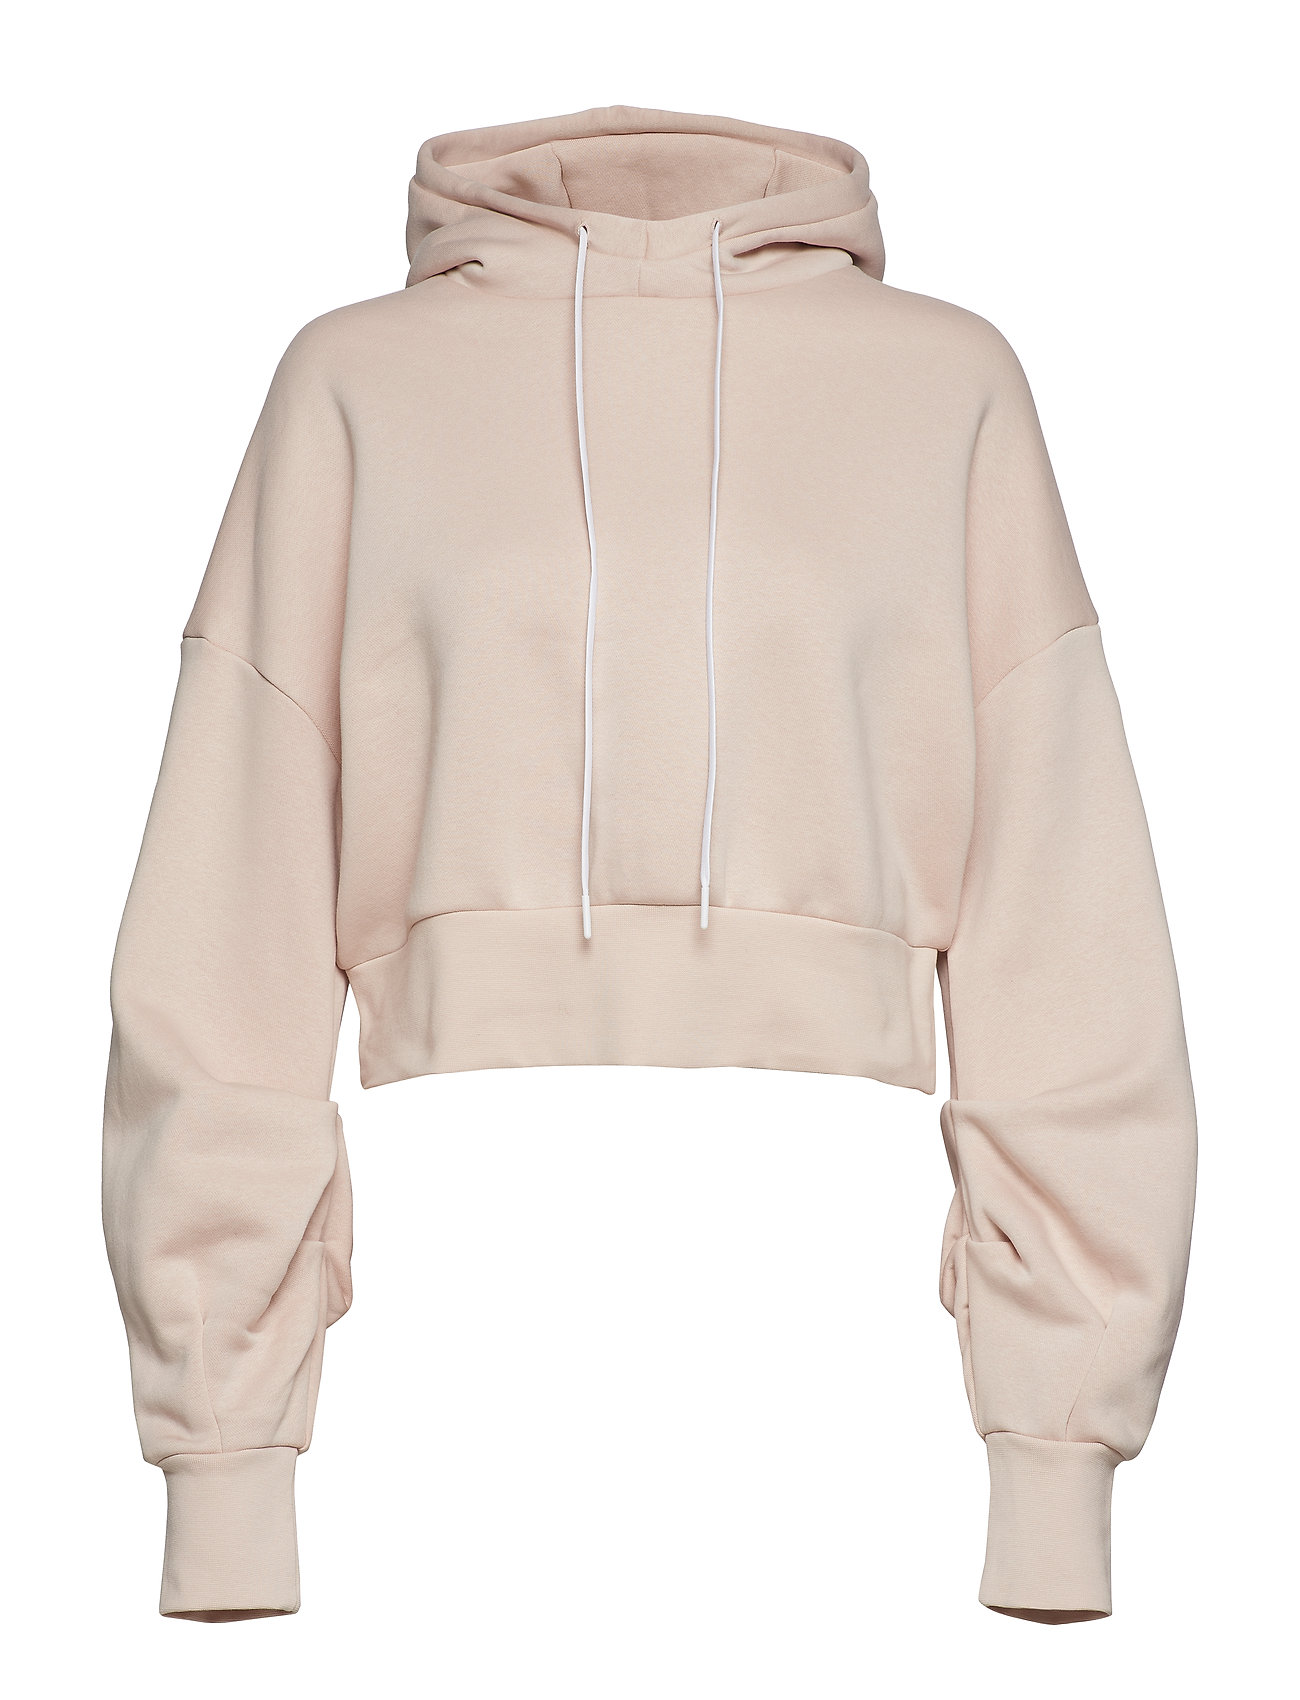 Reebok Performance S Fashion Hoodie - BUFF